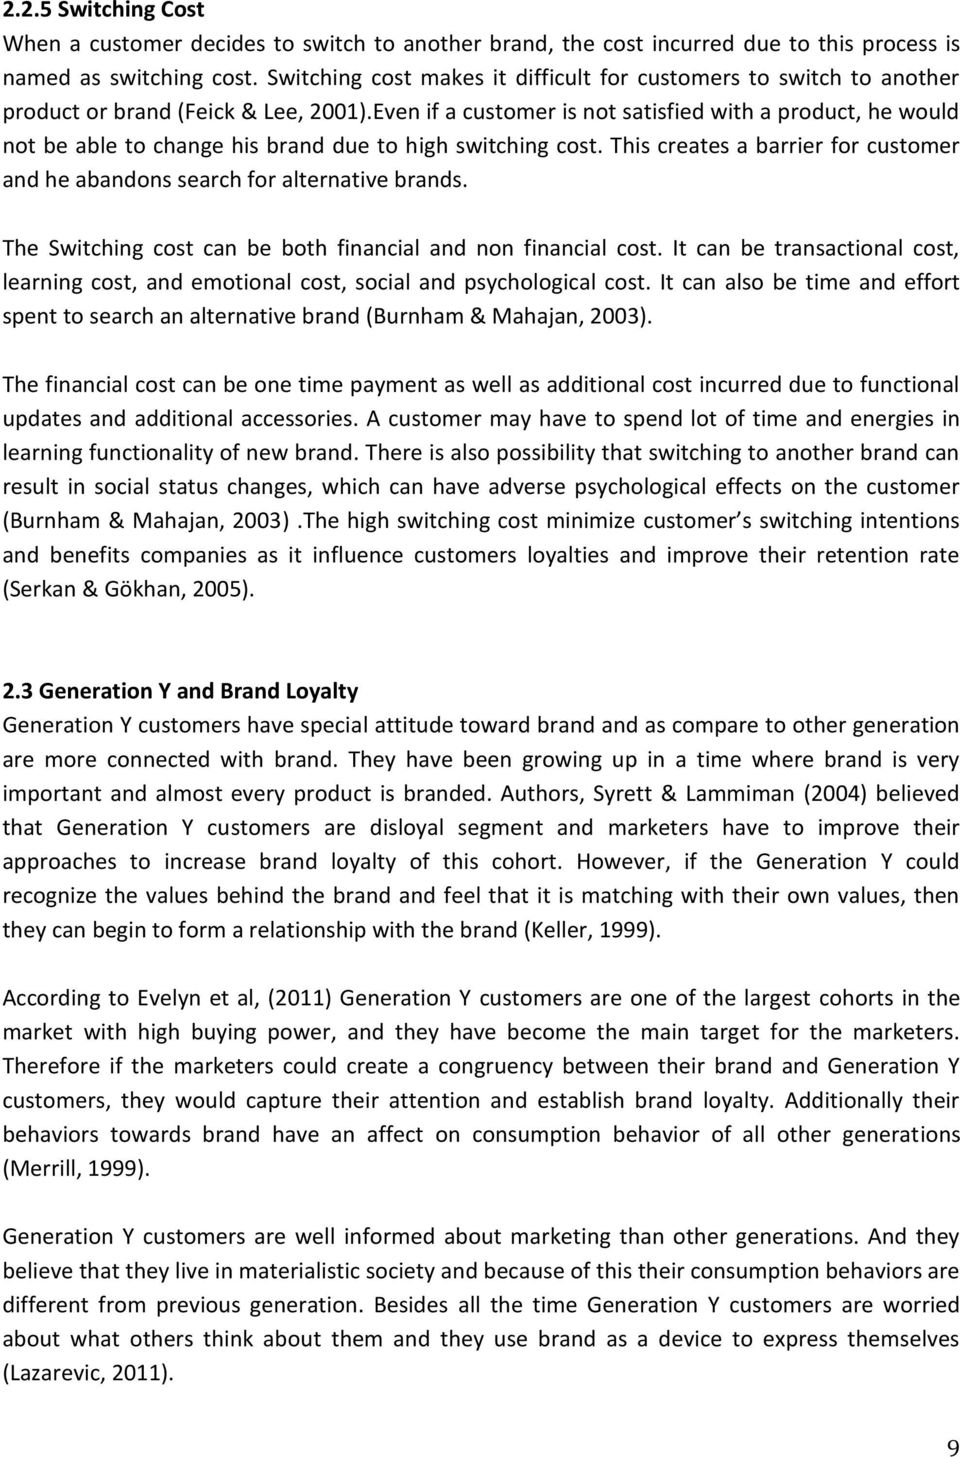 main factors influencing on customers loyalty marketing essay What makes customers stay loyal  cognitive marketing factors merchandize and fulfillment significantly impact satisfaction  table 1 factors influencing e .